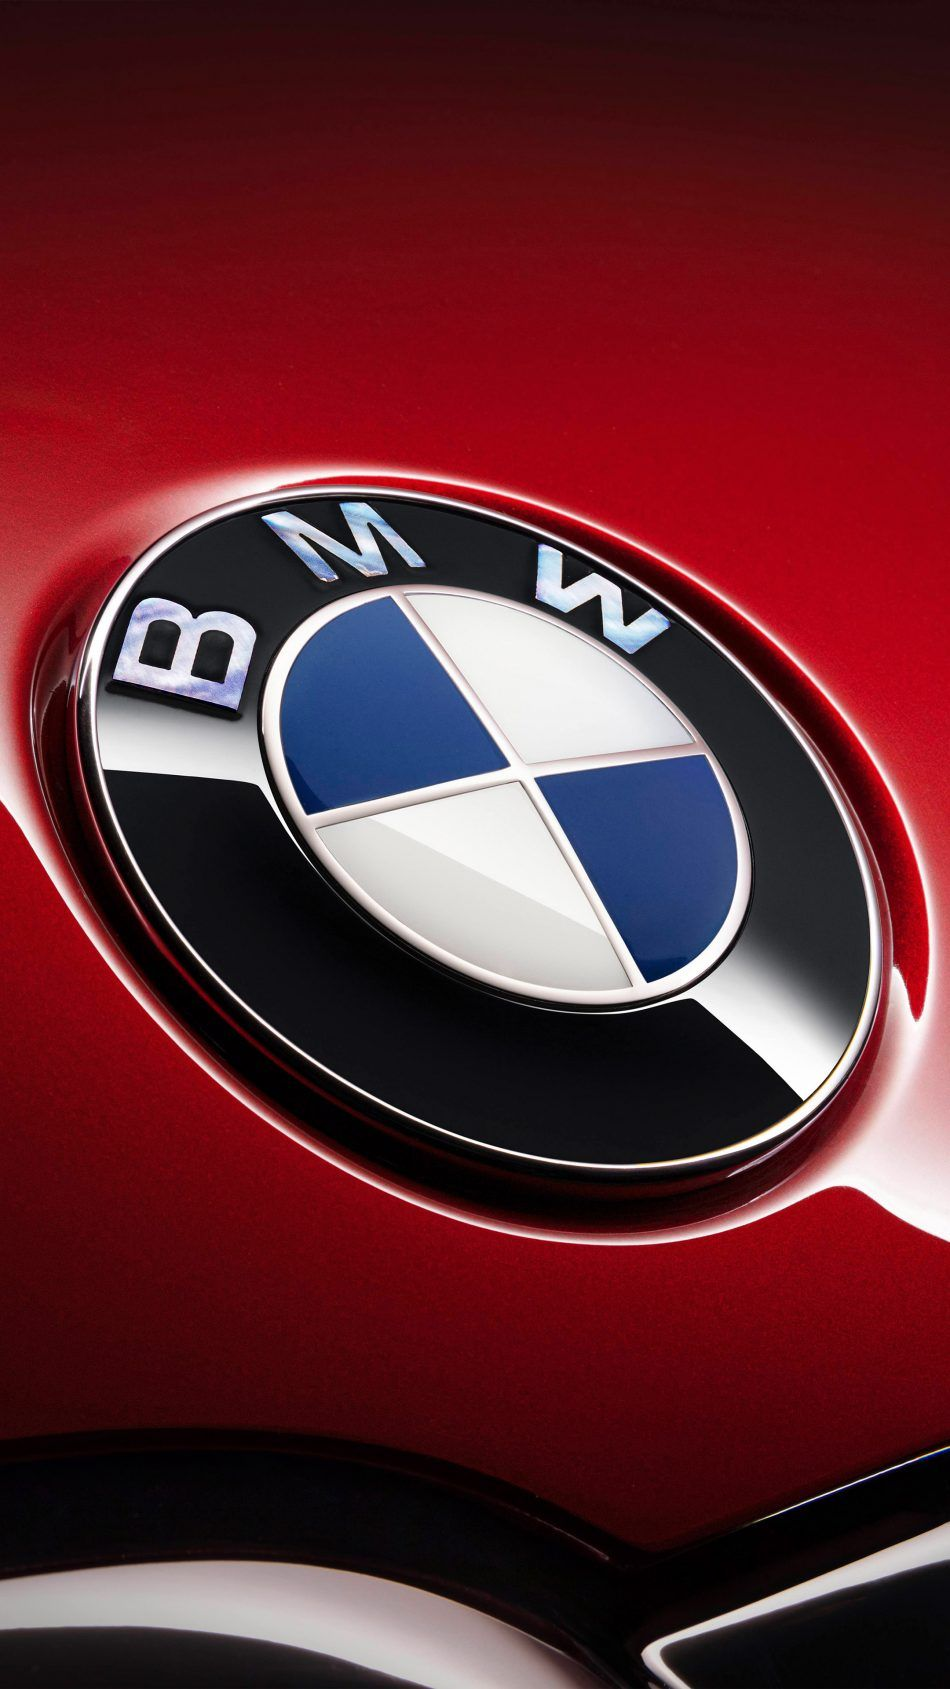 Bmw 7 Series Logo In 2020 Bmw Wallpapers Bmw Bmw Iphone Wallpaper